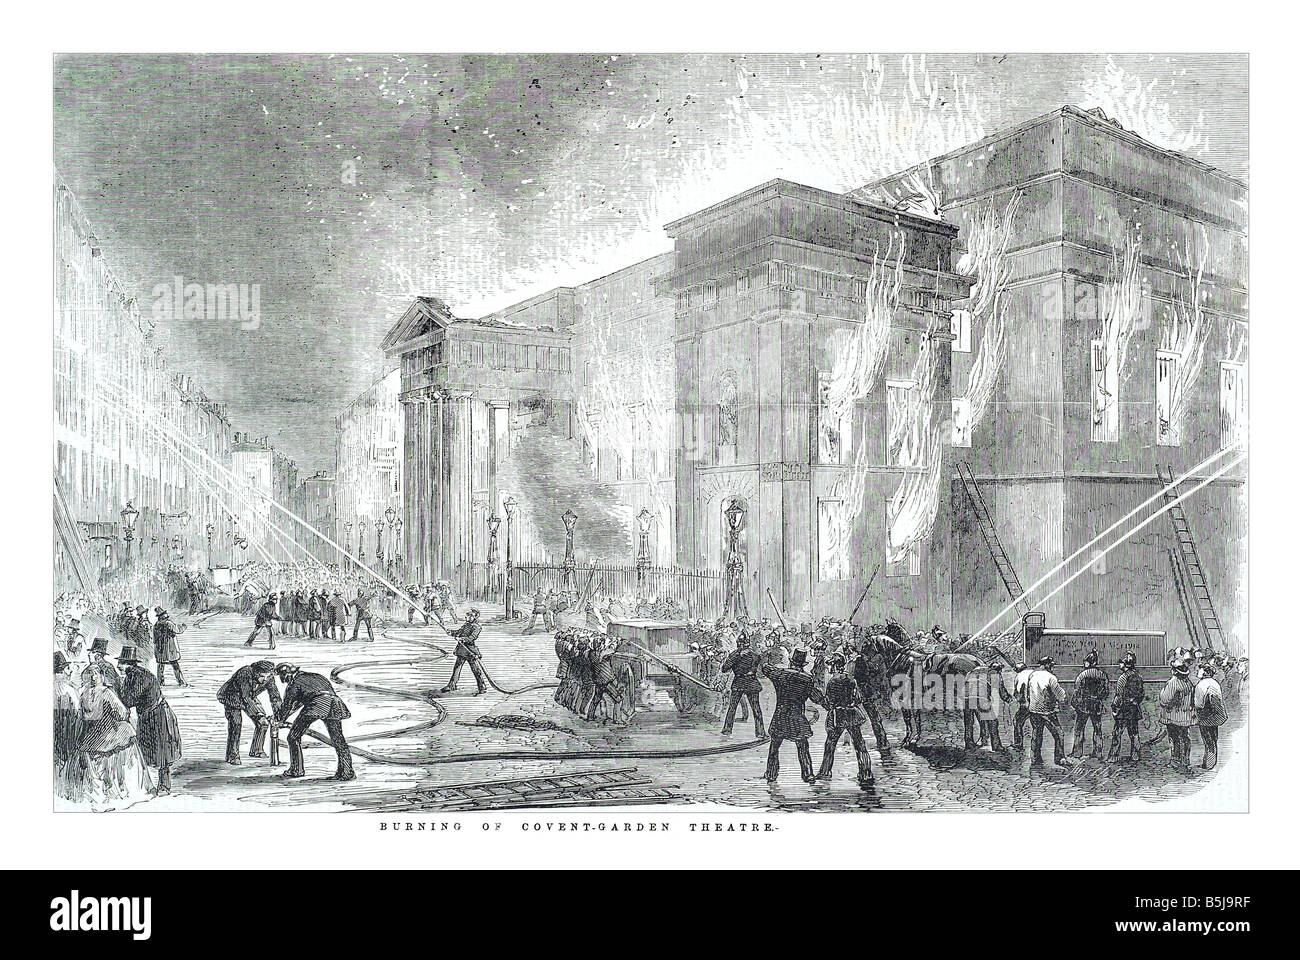 Burning of Covent garden theatre March 15 1856 The Illustrated London News Page 276 - Stock Image